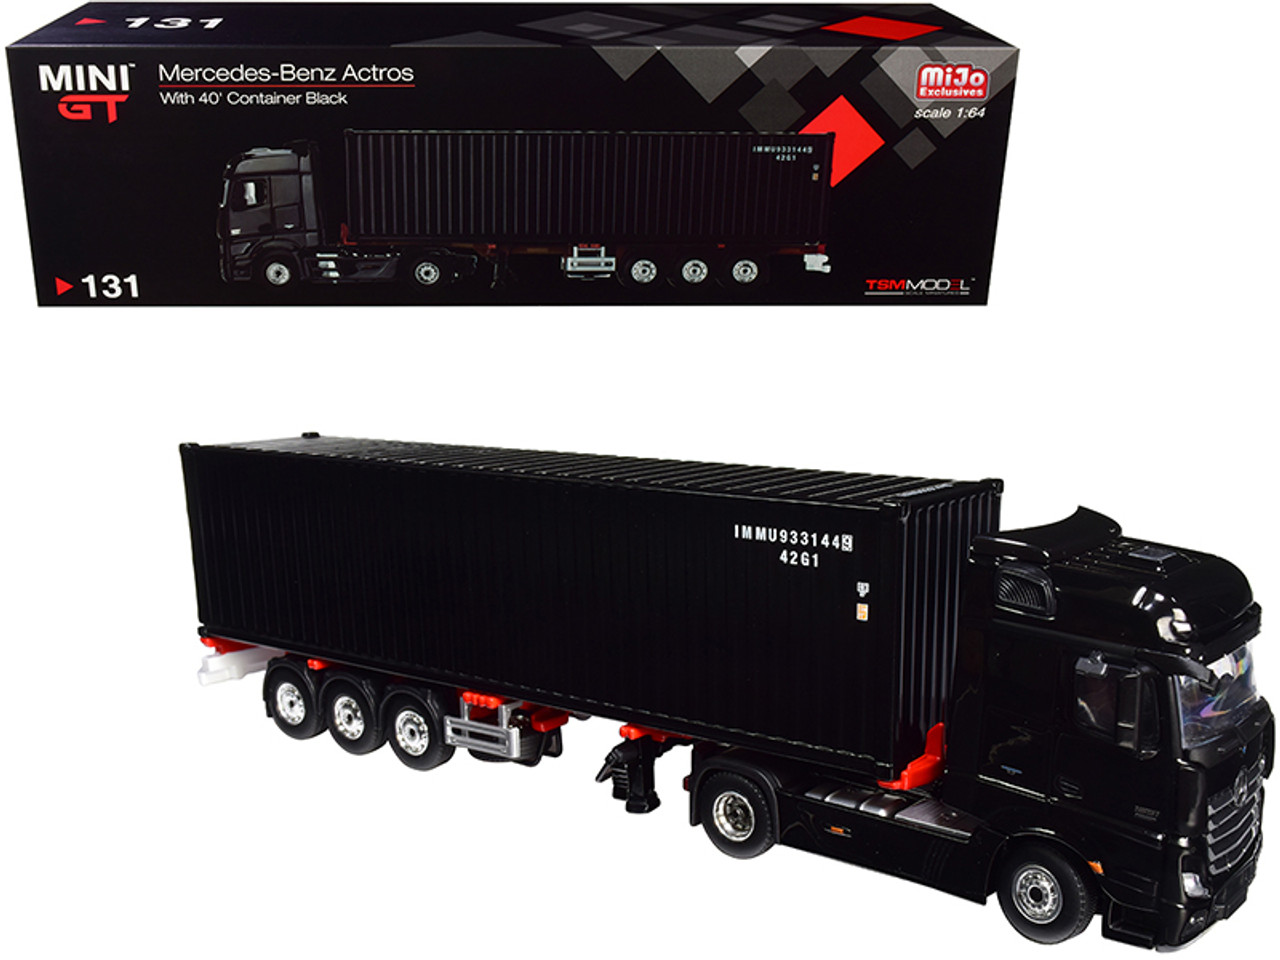 Mercedes Benz Actros with Trailer and 40' Container Black 1/64 Diecast Model by True Scale Miniatures